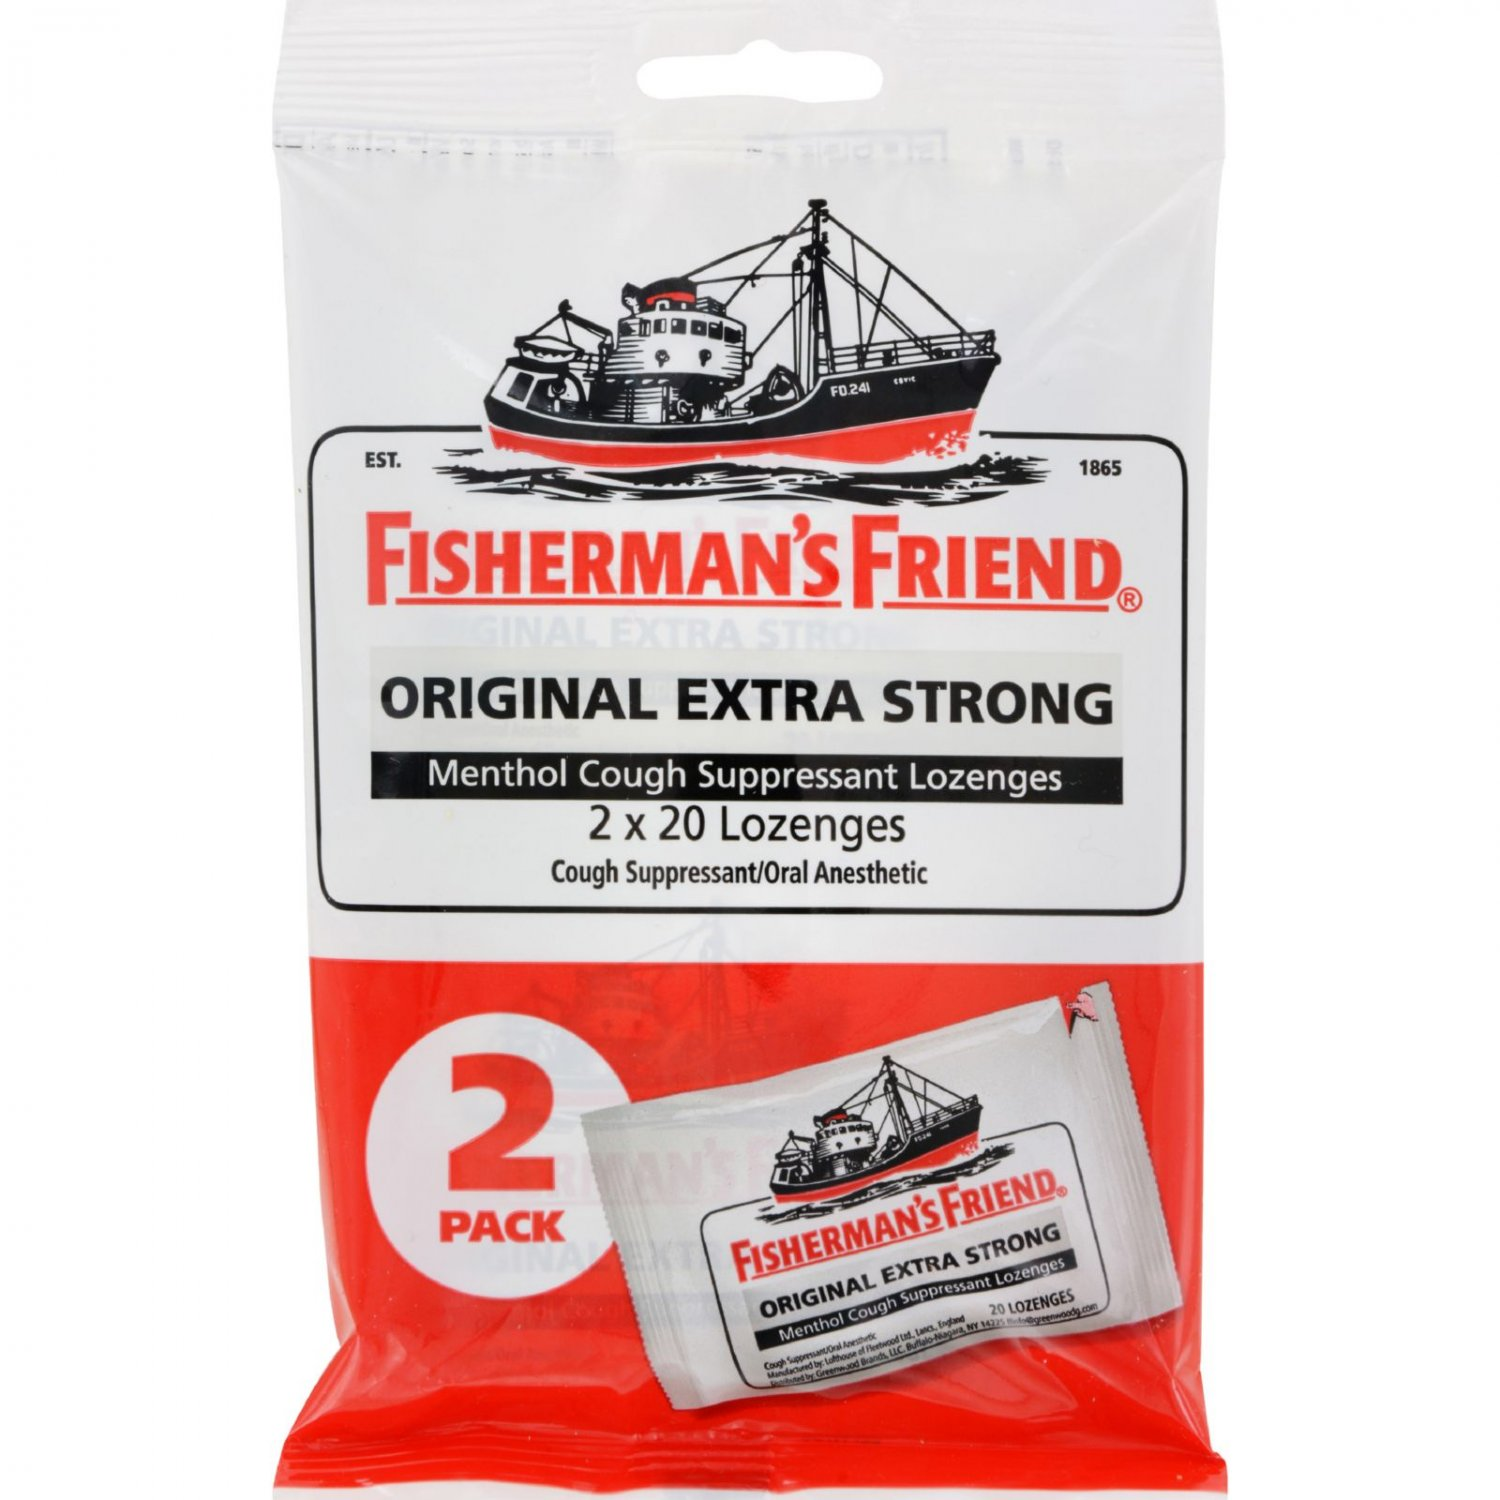 Fisherman's Friend Lozenges - Original Extra Strong - Dsp - 40 ct - 1 Case